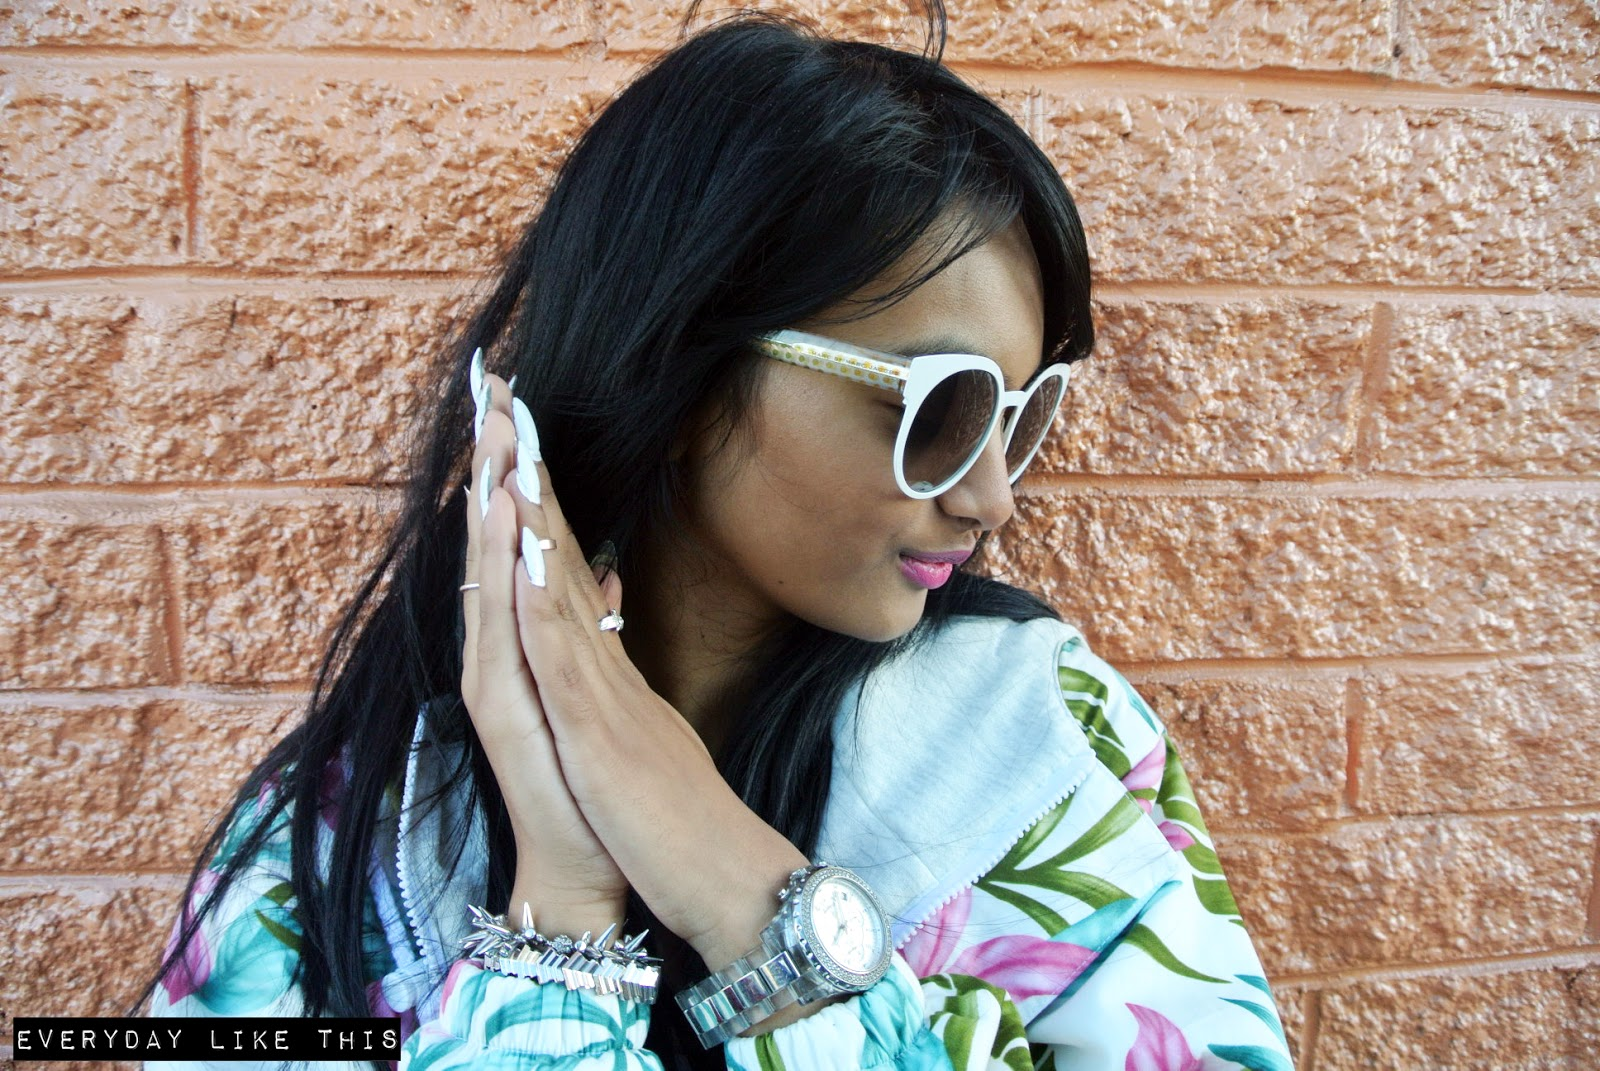 Vision Direct Marc by Marc jacobs no fun babe fashion blogger melbourne everyday like this fashion ootd tropical parker michael steve madden heels rihanna all white crop asos kors claws nails sunnies pink lipstick hip hop style fashion